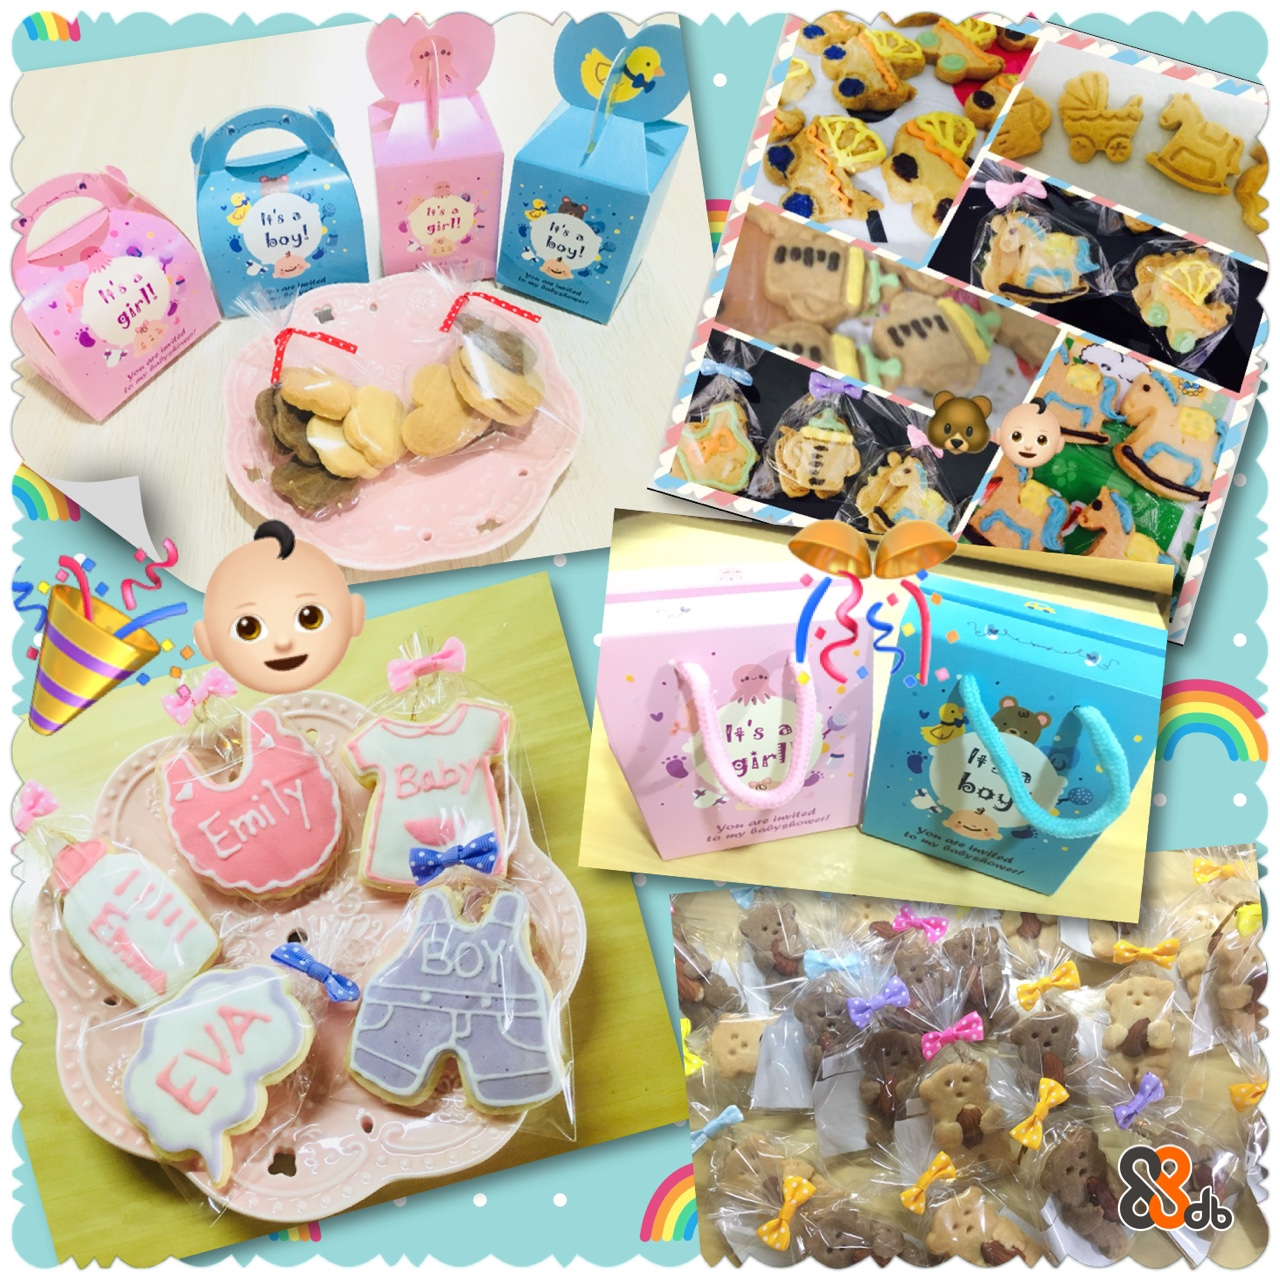 girl! oy boy! 9 ts a Bab  baking,toy,product,snack,food